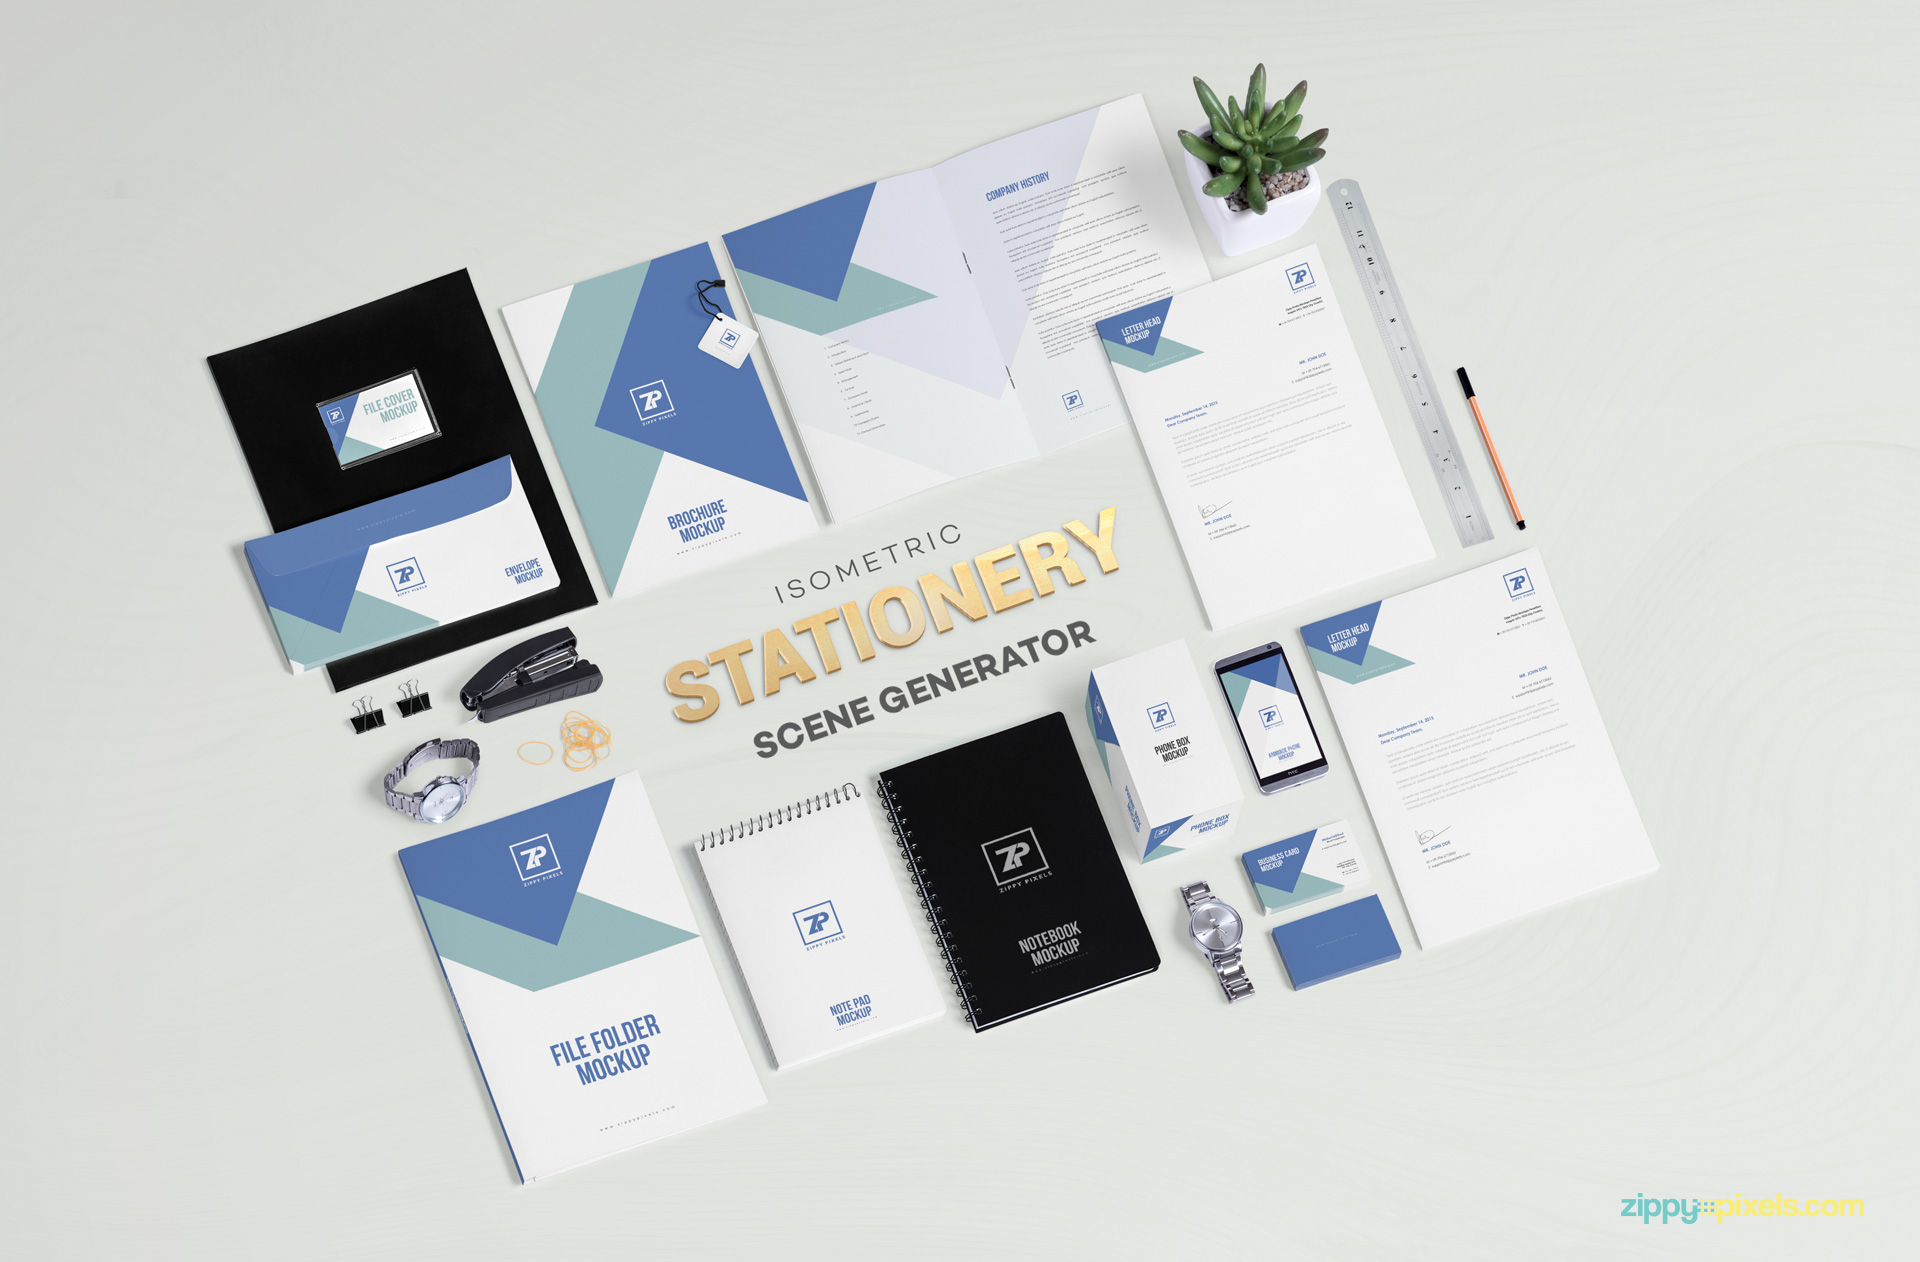 Free stationery mockup scene generator for bringing eye candy to your brand designs